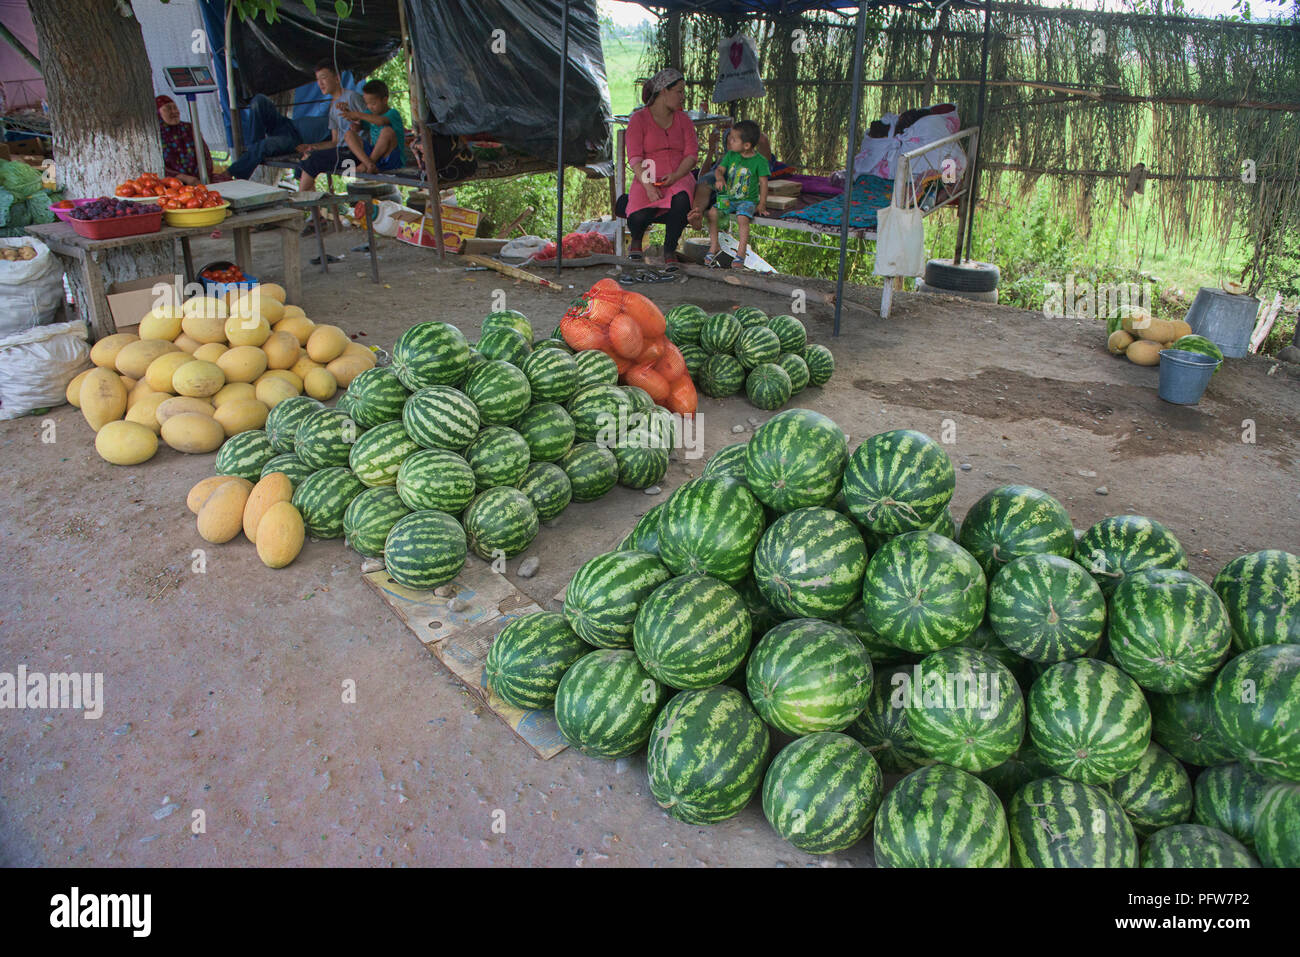 Watermelons for sale by the roadside, Osh, Kyrgyzstan Stock Photo